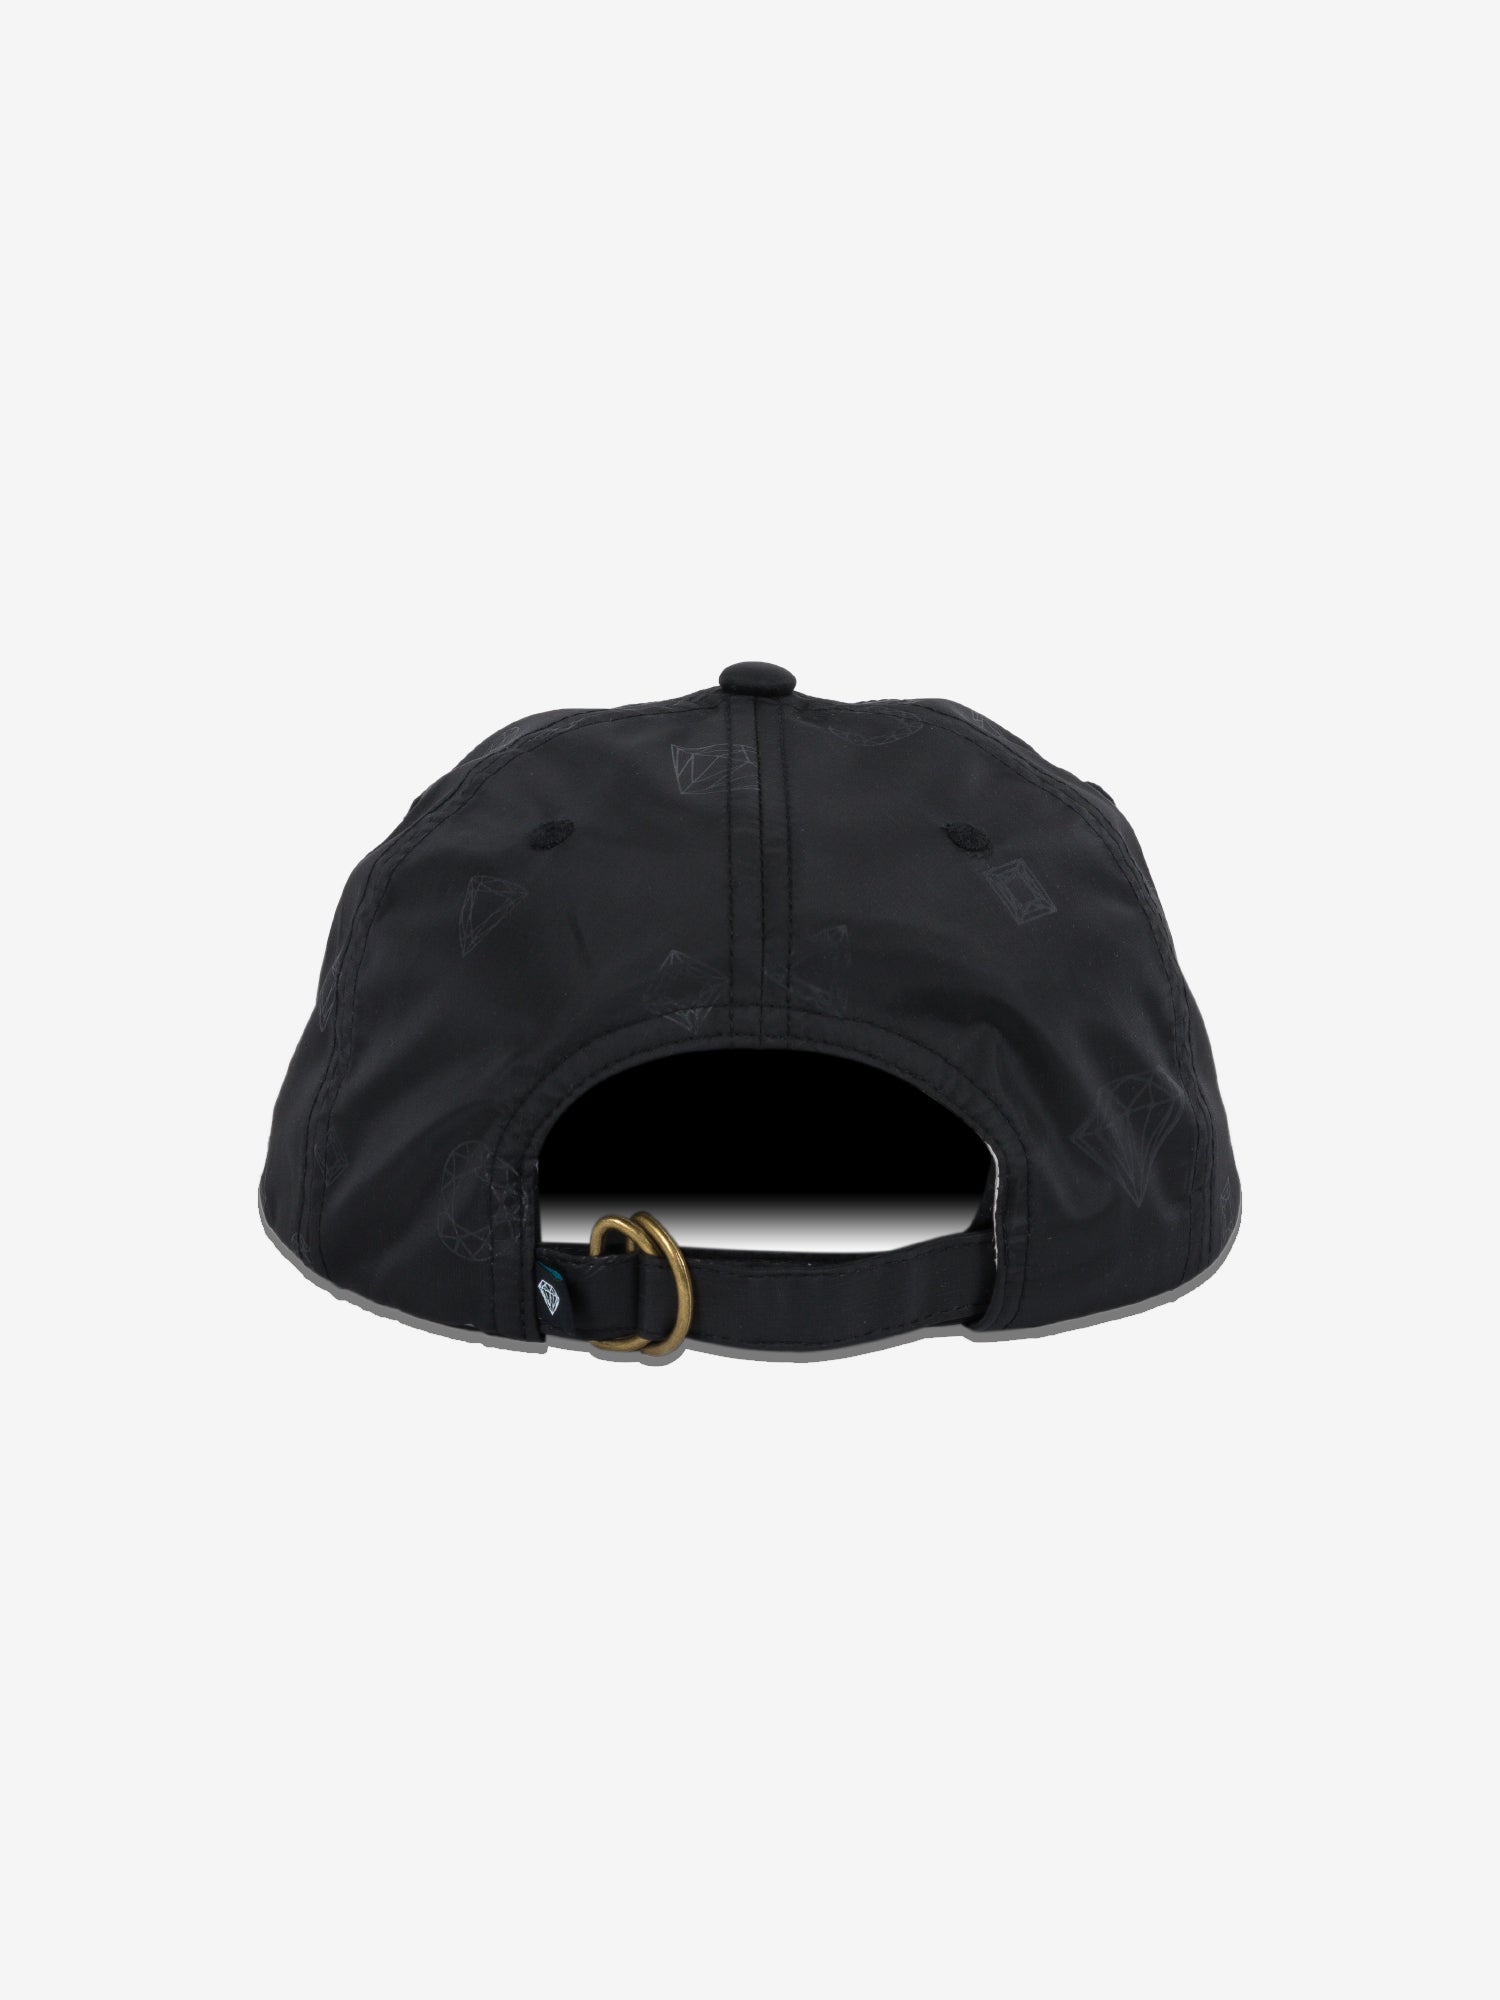 Monogram Strapback Hat - Black